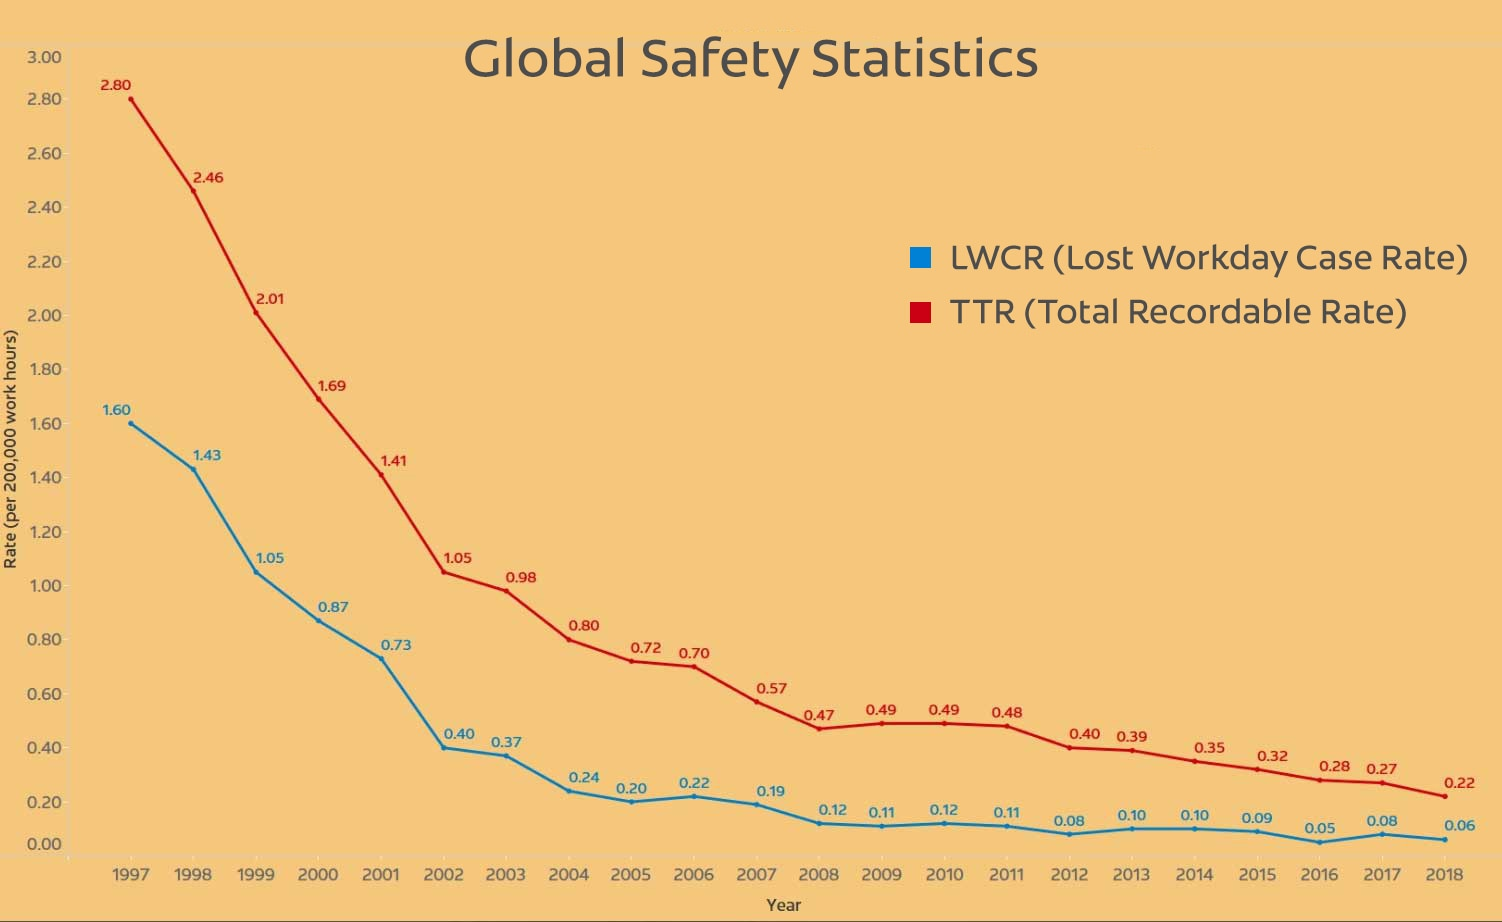 Global Safety Statistics